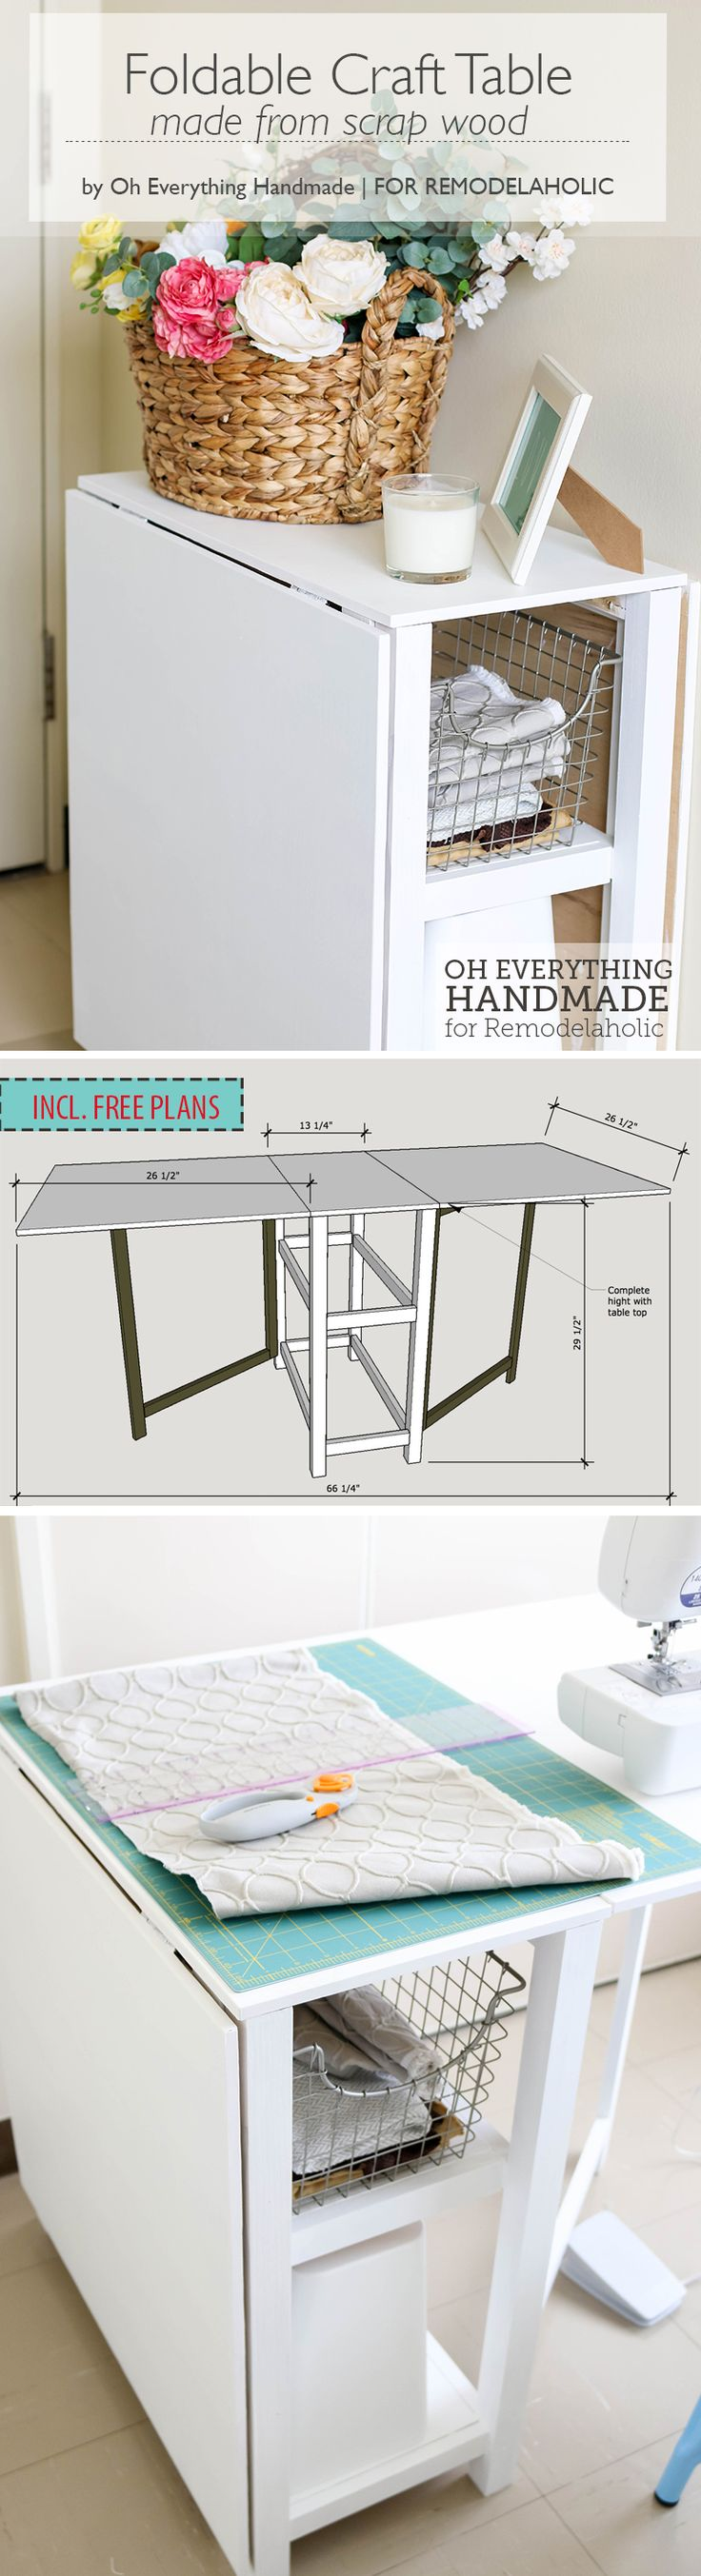 Best 25+ Folding Tables Ideas On Pinterest | Folding Table Diy, Modern Folding  Tables And Window Desk